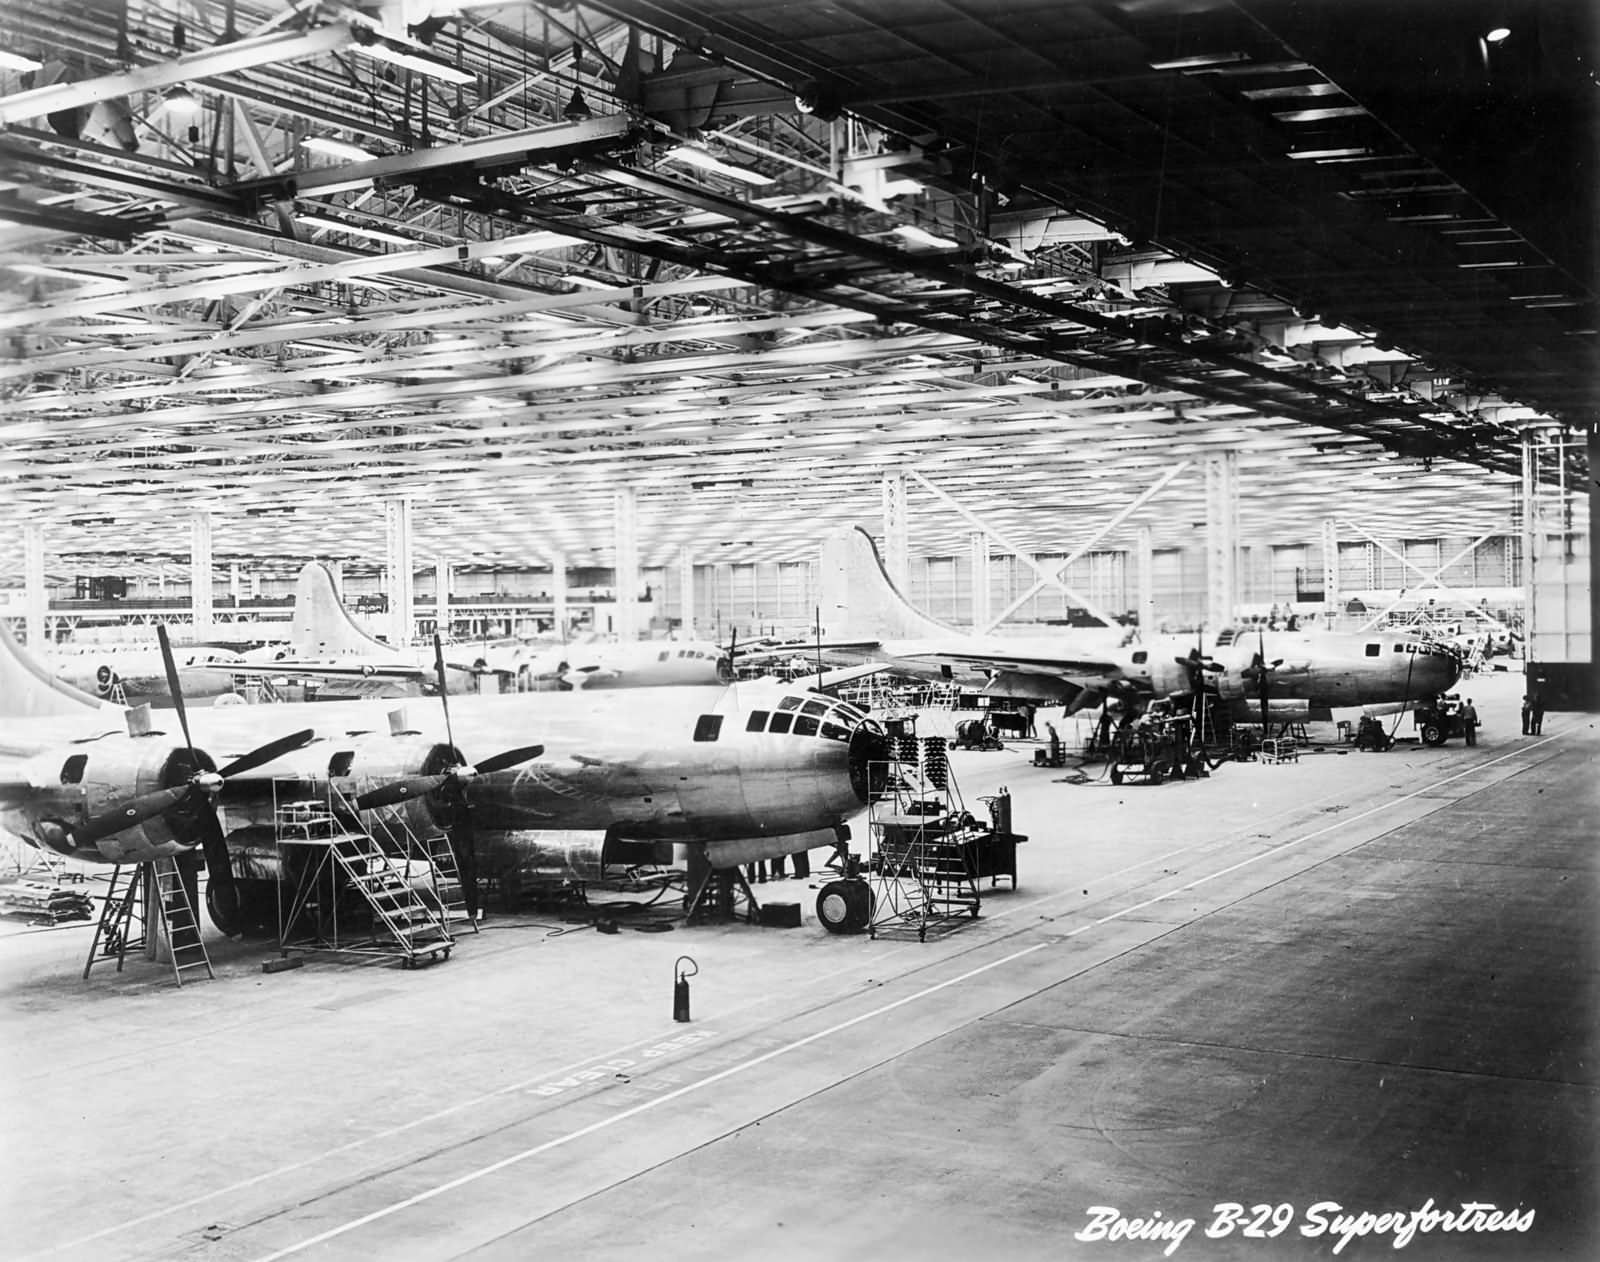 Boeing B-29 Superfortress in Boeing factory